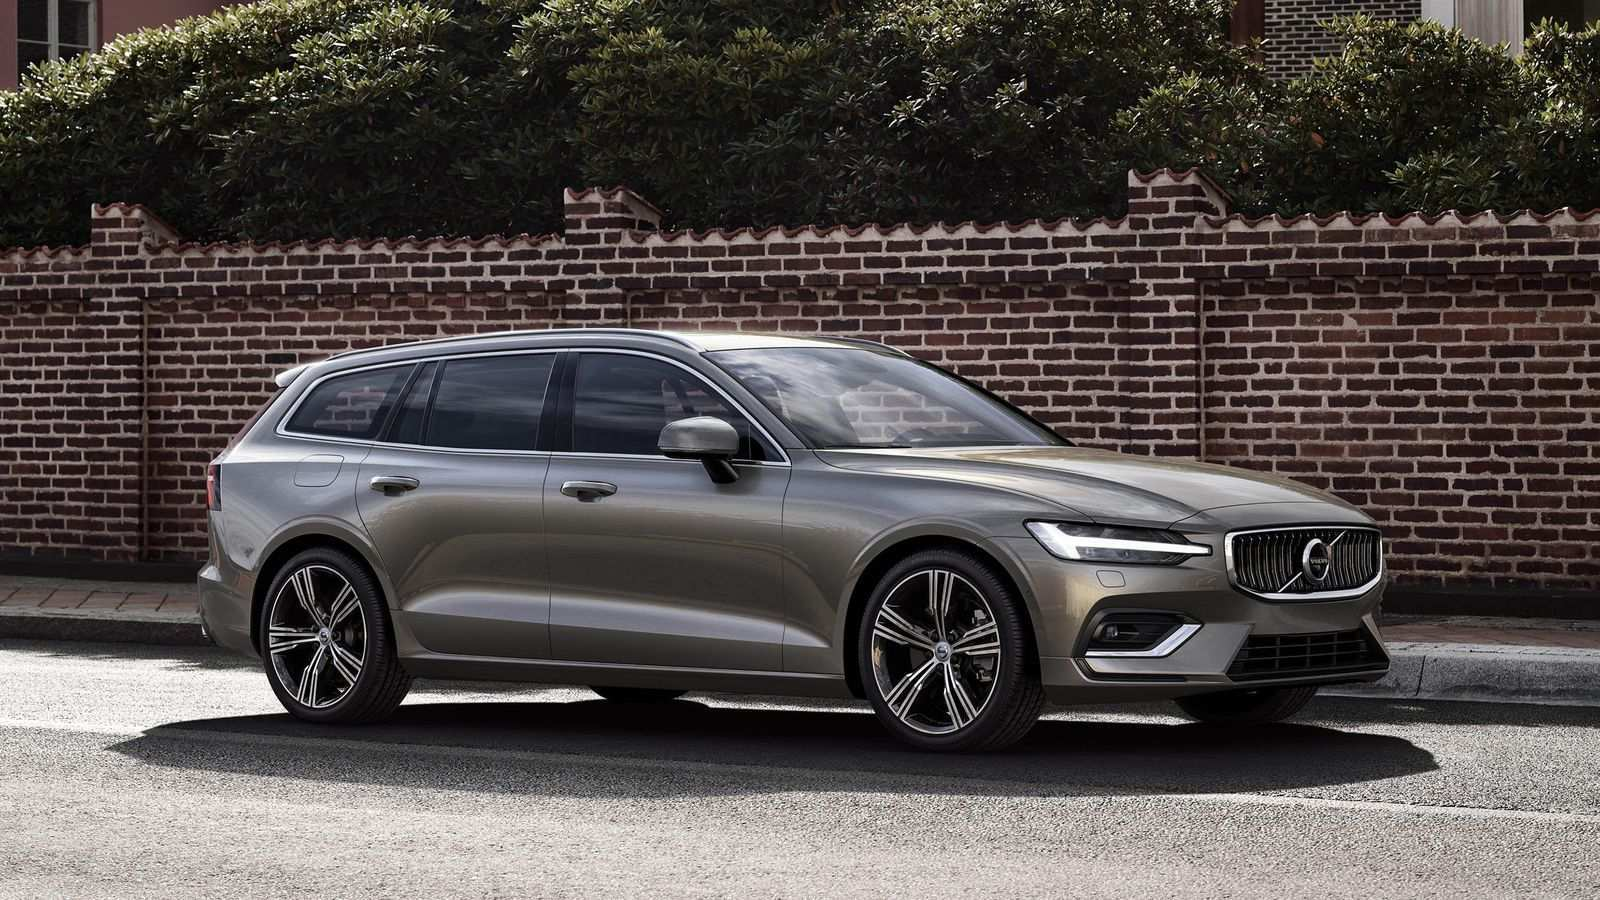 68 The 2019 Volvo Models Exterior and Interior for 2019 Volvo Models